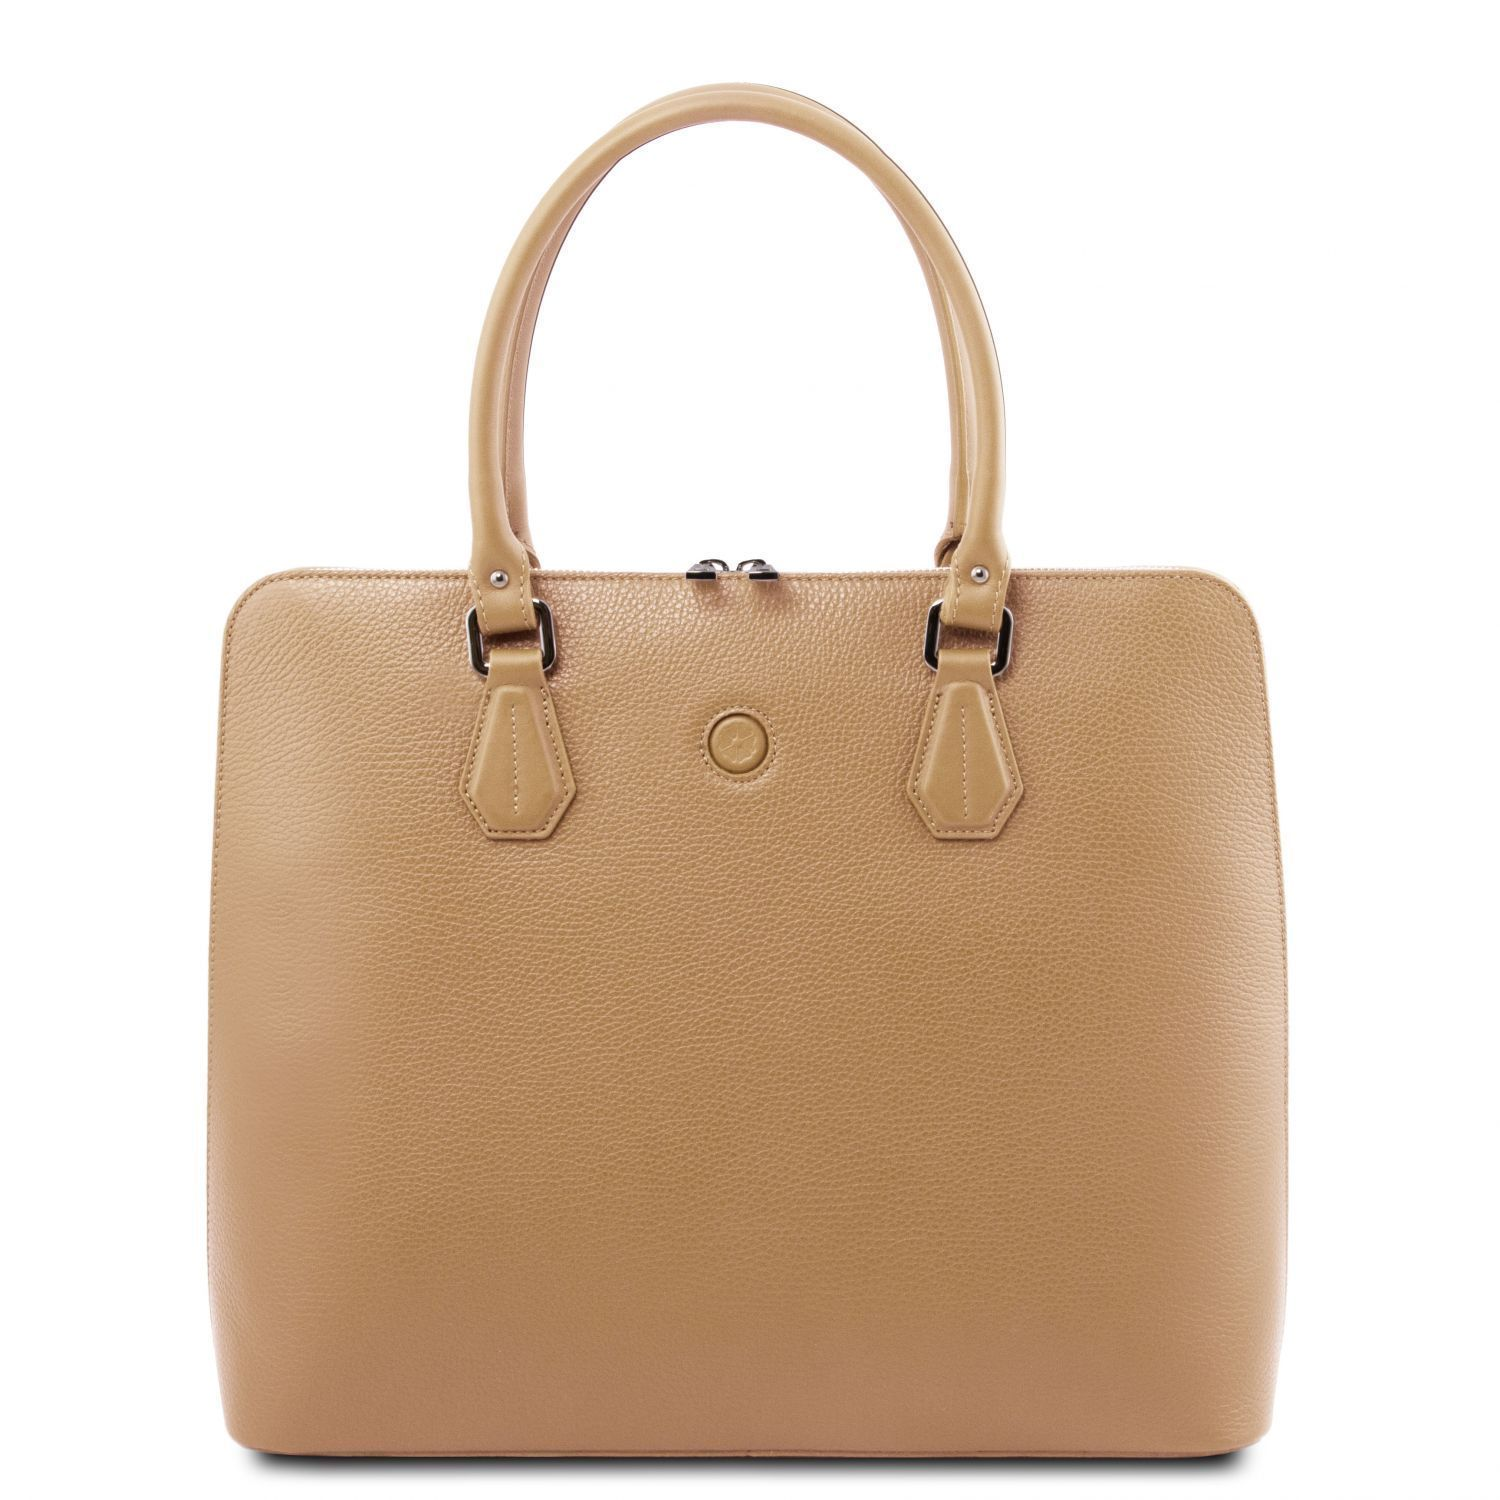 Tuscany Leather 'Magnolia' Shoulder Bag TL141809 Ladies Shoulder Bag Tuscany Leather Champagne